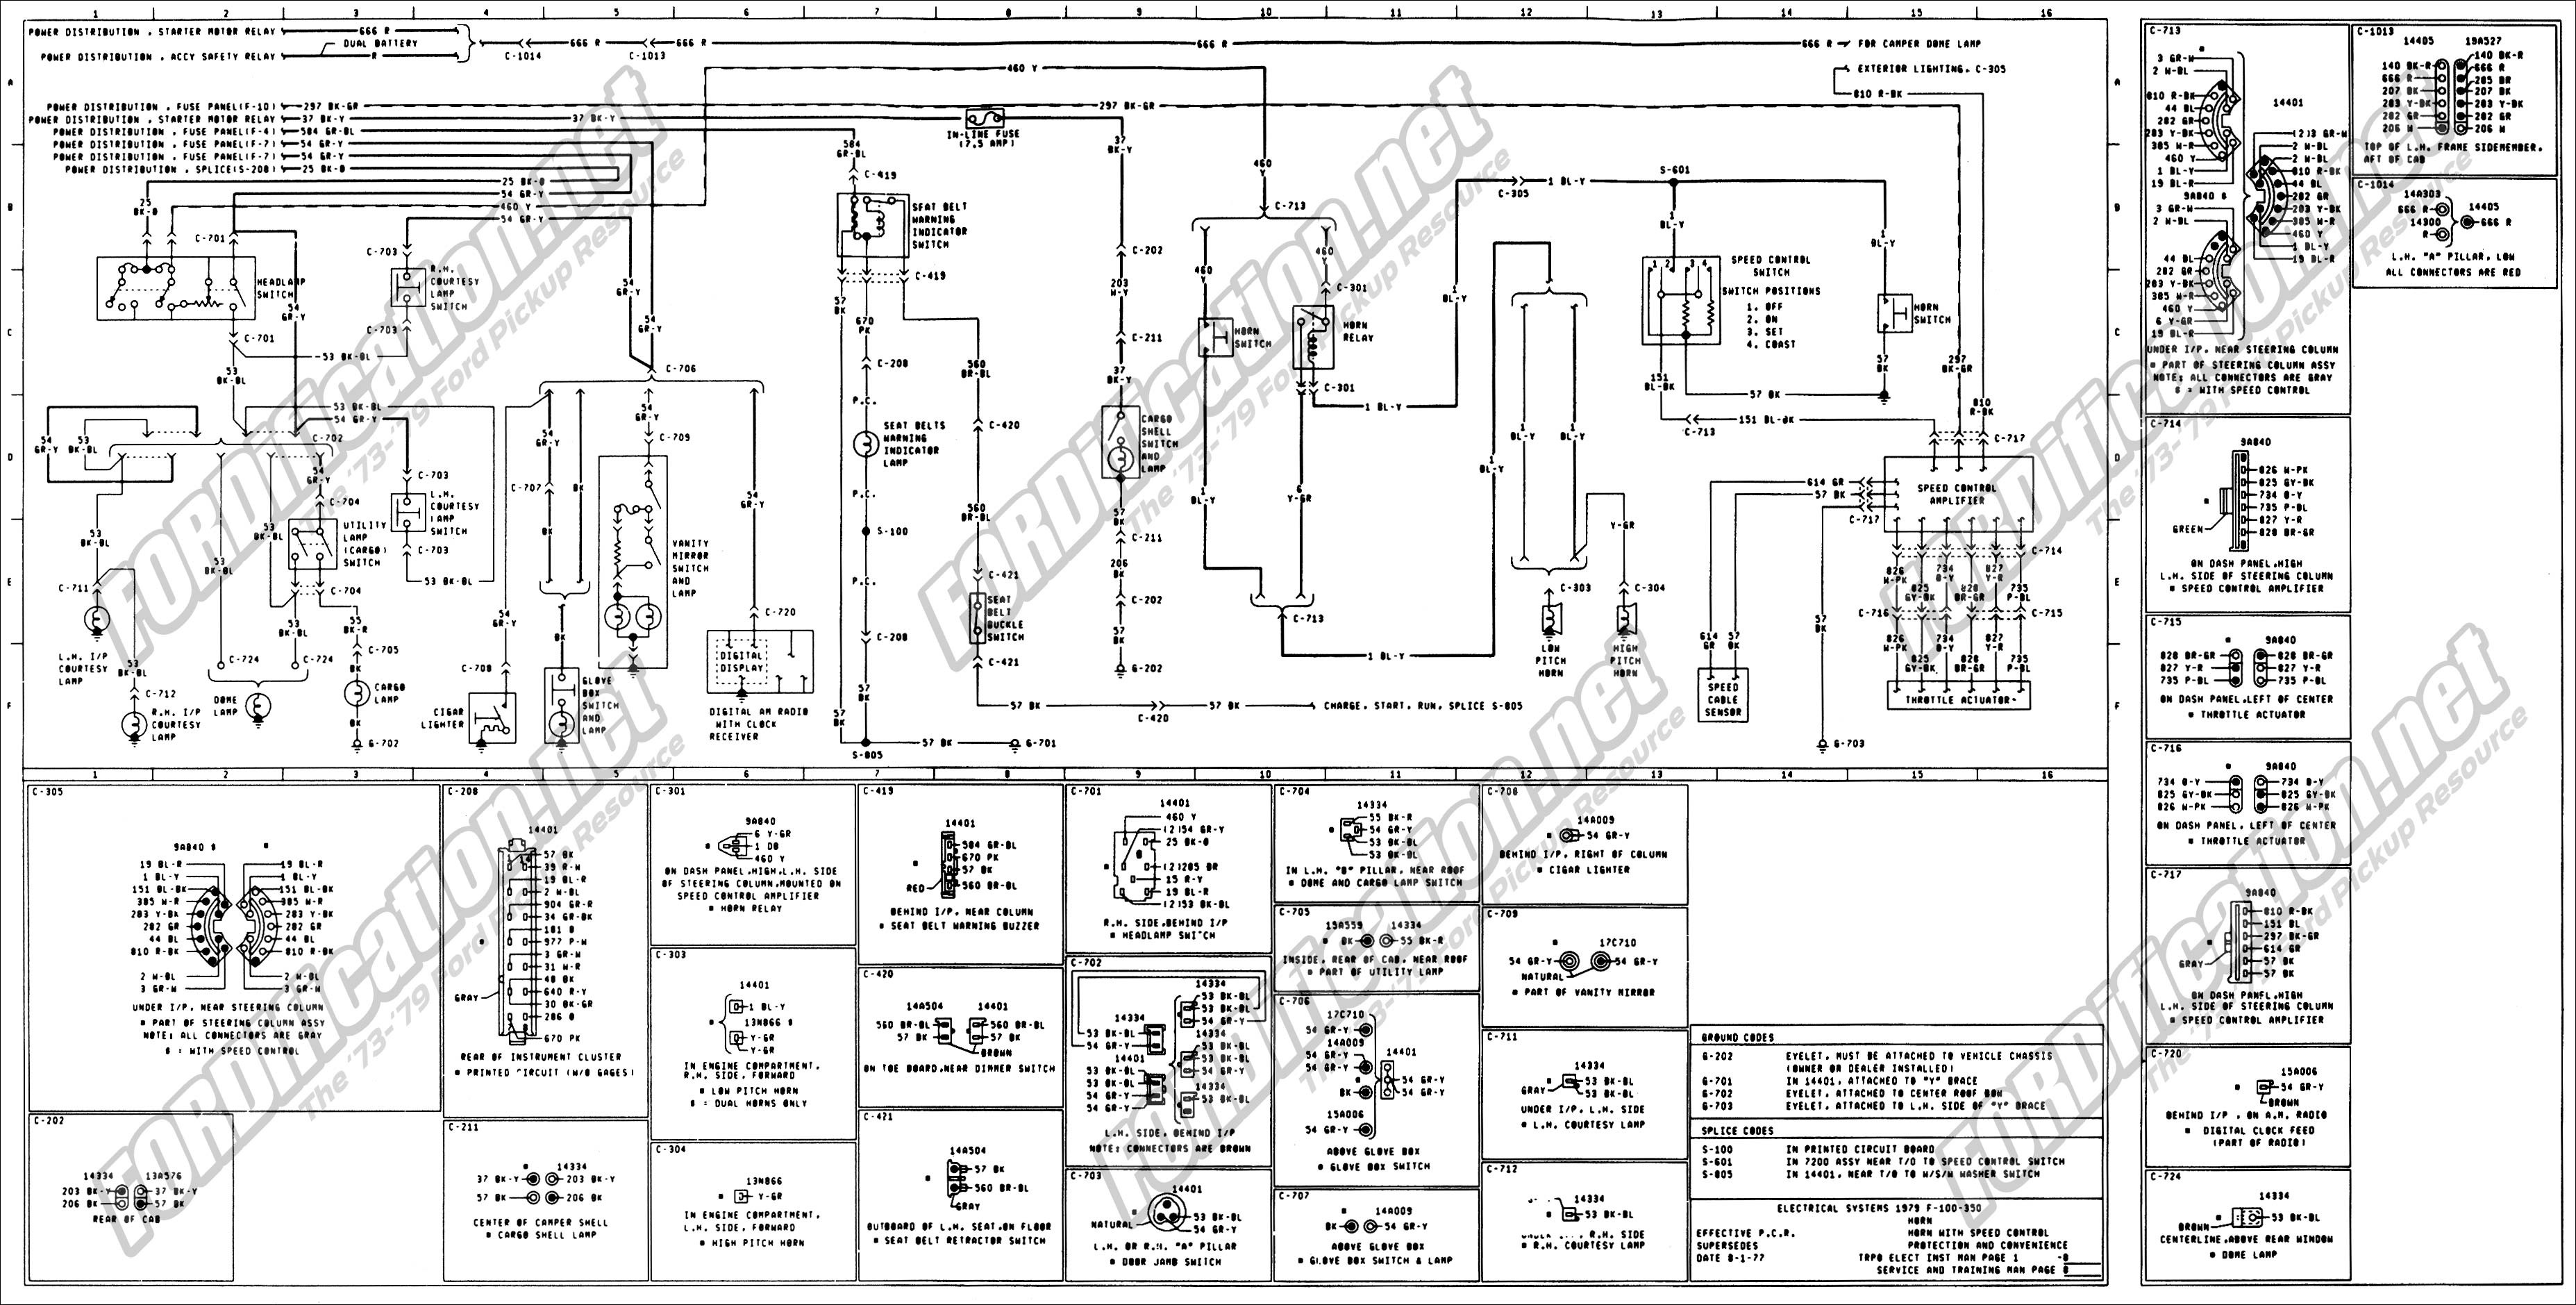 2010 ford F150 Wiring Diagram 1973 1979 ford Truck Wiring Diagrams & Schematics fordification Of 2010 ford F150 Wiring Diagram